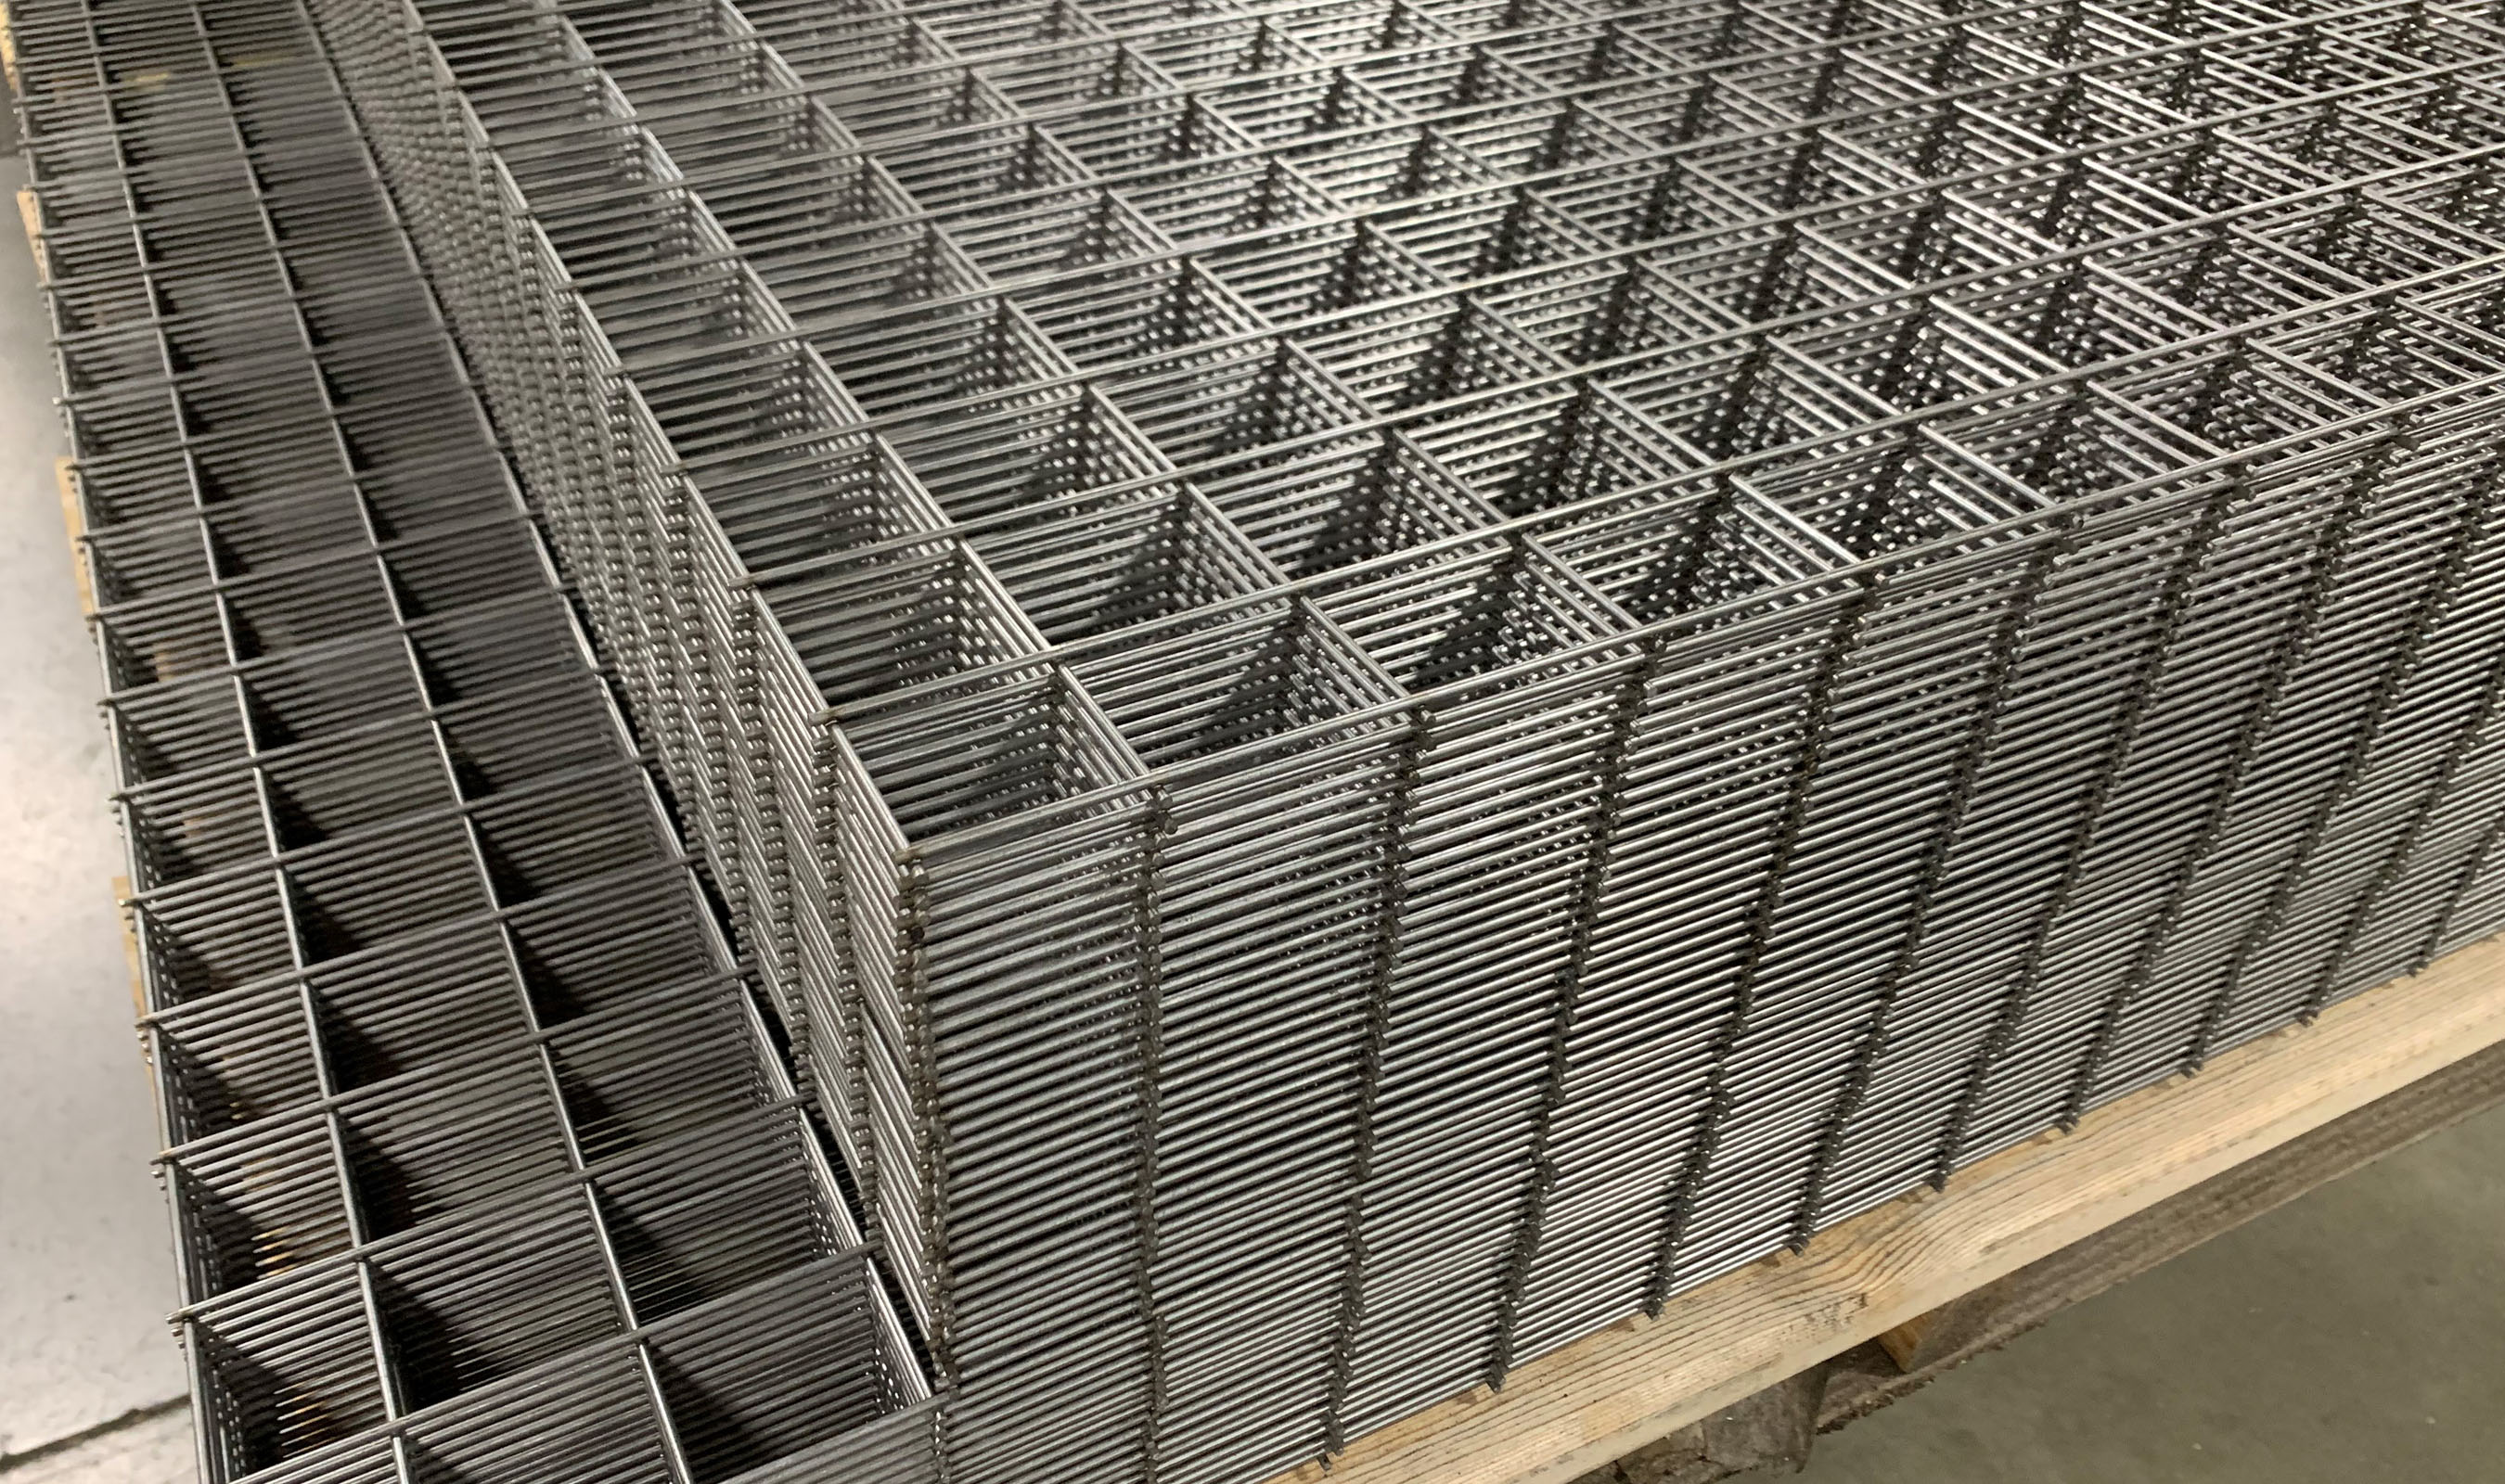 WD-124 Stainless Steel Welded Wire Mesh